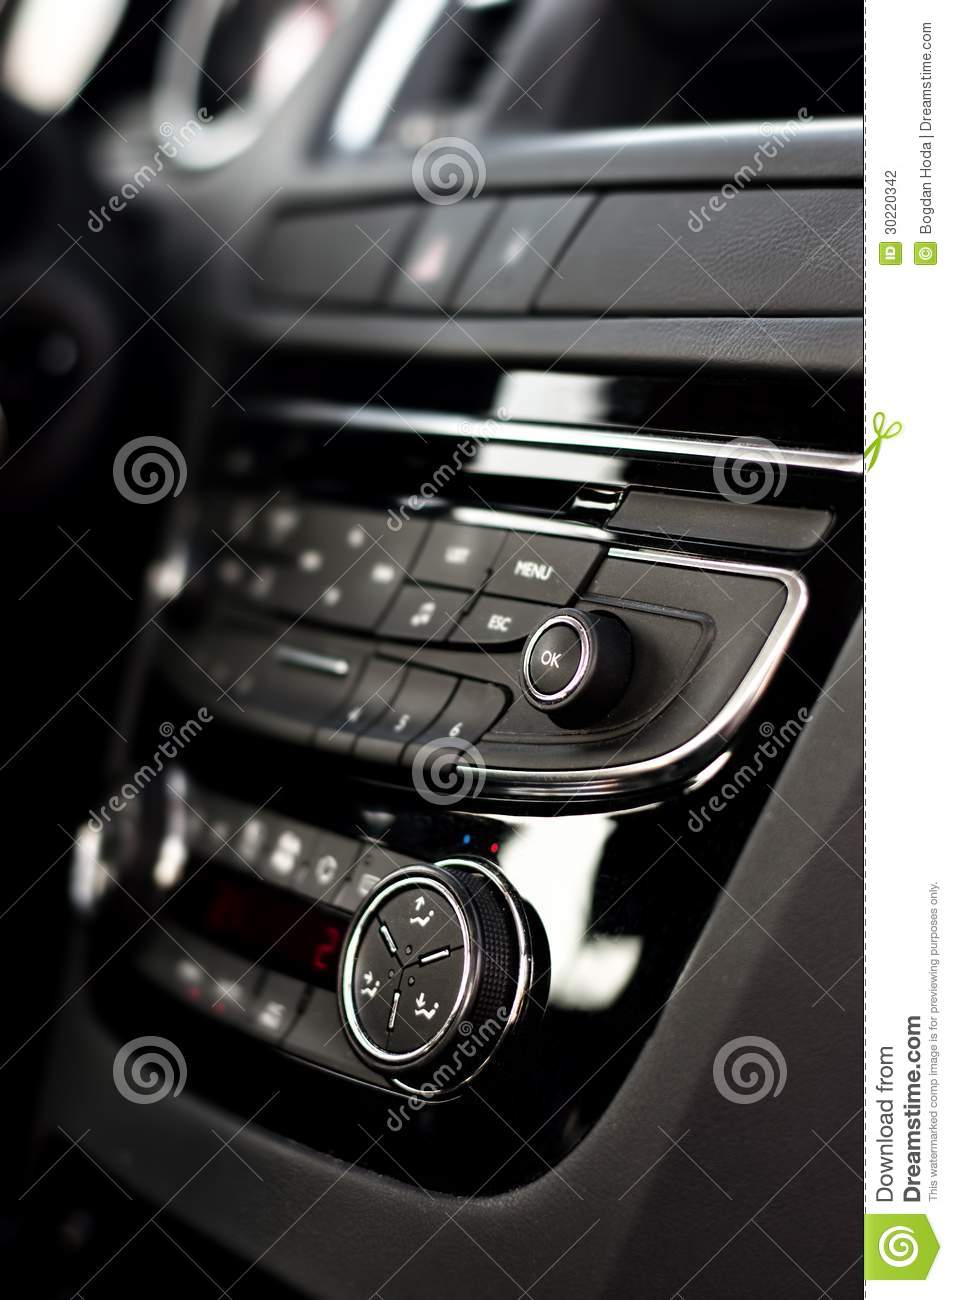 modern dashboard with clima controls in car interior stock photo image 30220342. Black Bedroom Furniture Sets. Home Design Ideas